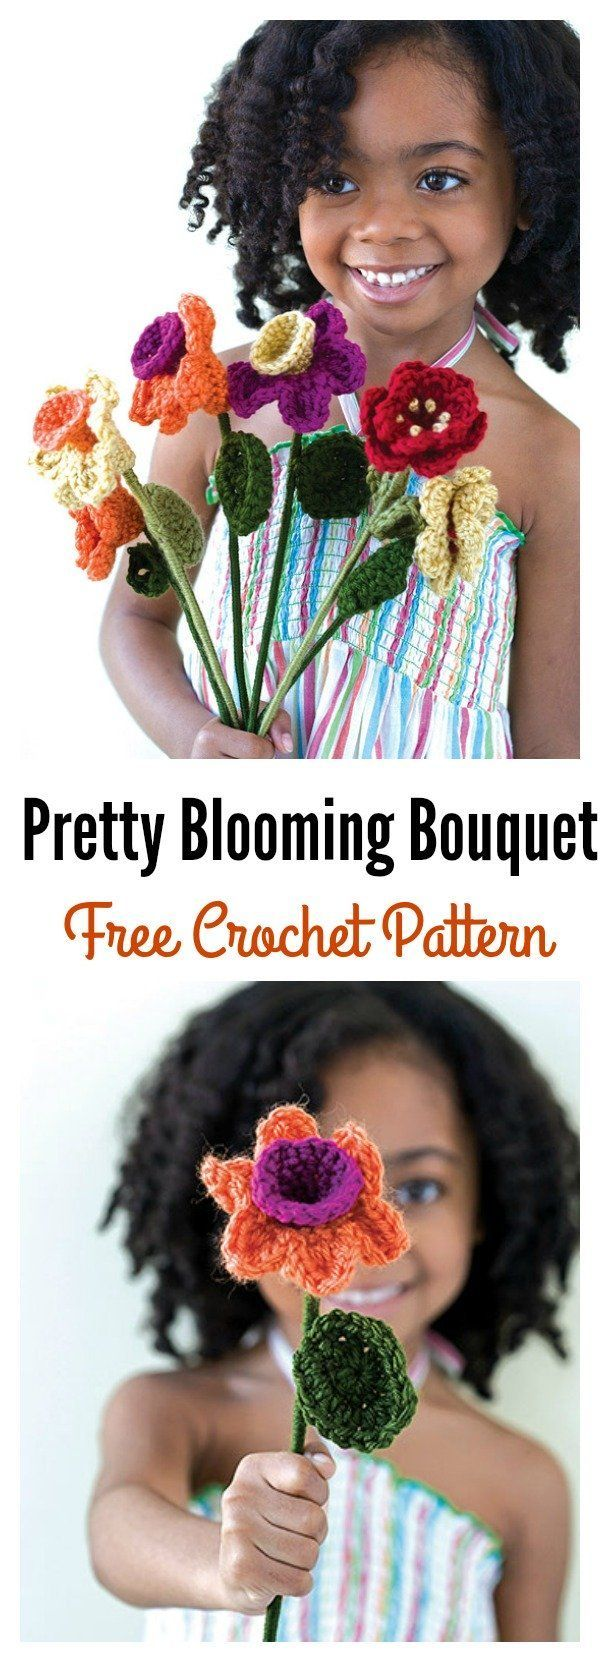 Valentine's Day Crochet Flowers Free Patterns #valentines day crafts decorations crochet patterns Valentine's Day Crochet Flowers Free Patterns #crochetedflowers